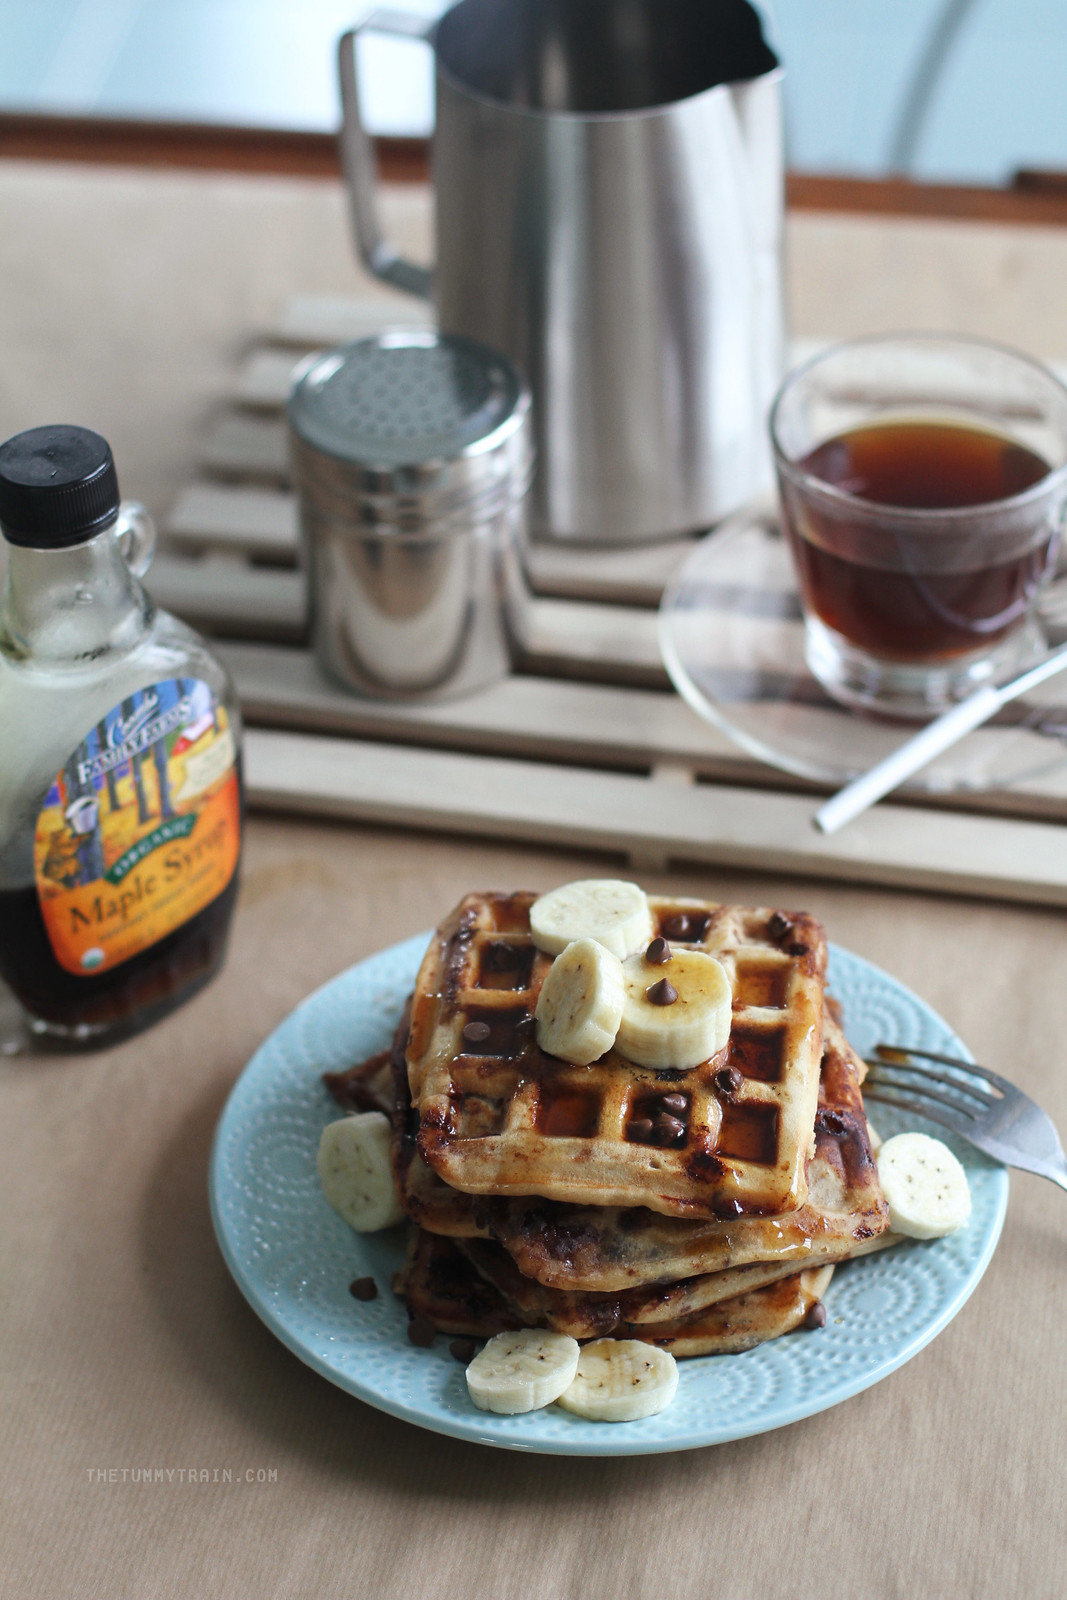 16727832820 424ad93152 h - Peanut Butter Banana Waffles coz it's Waffle Day!